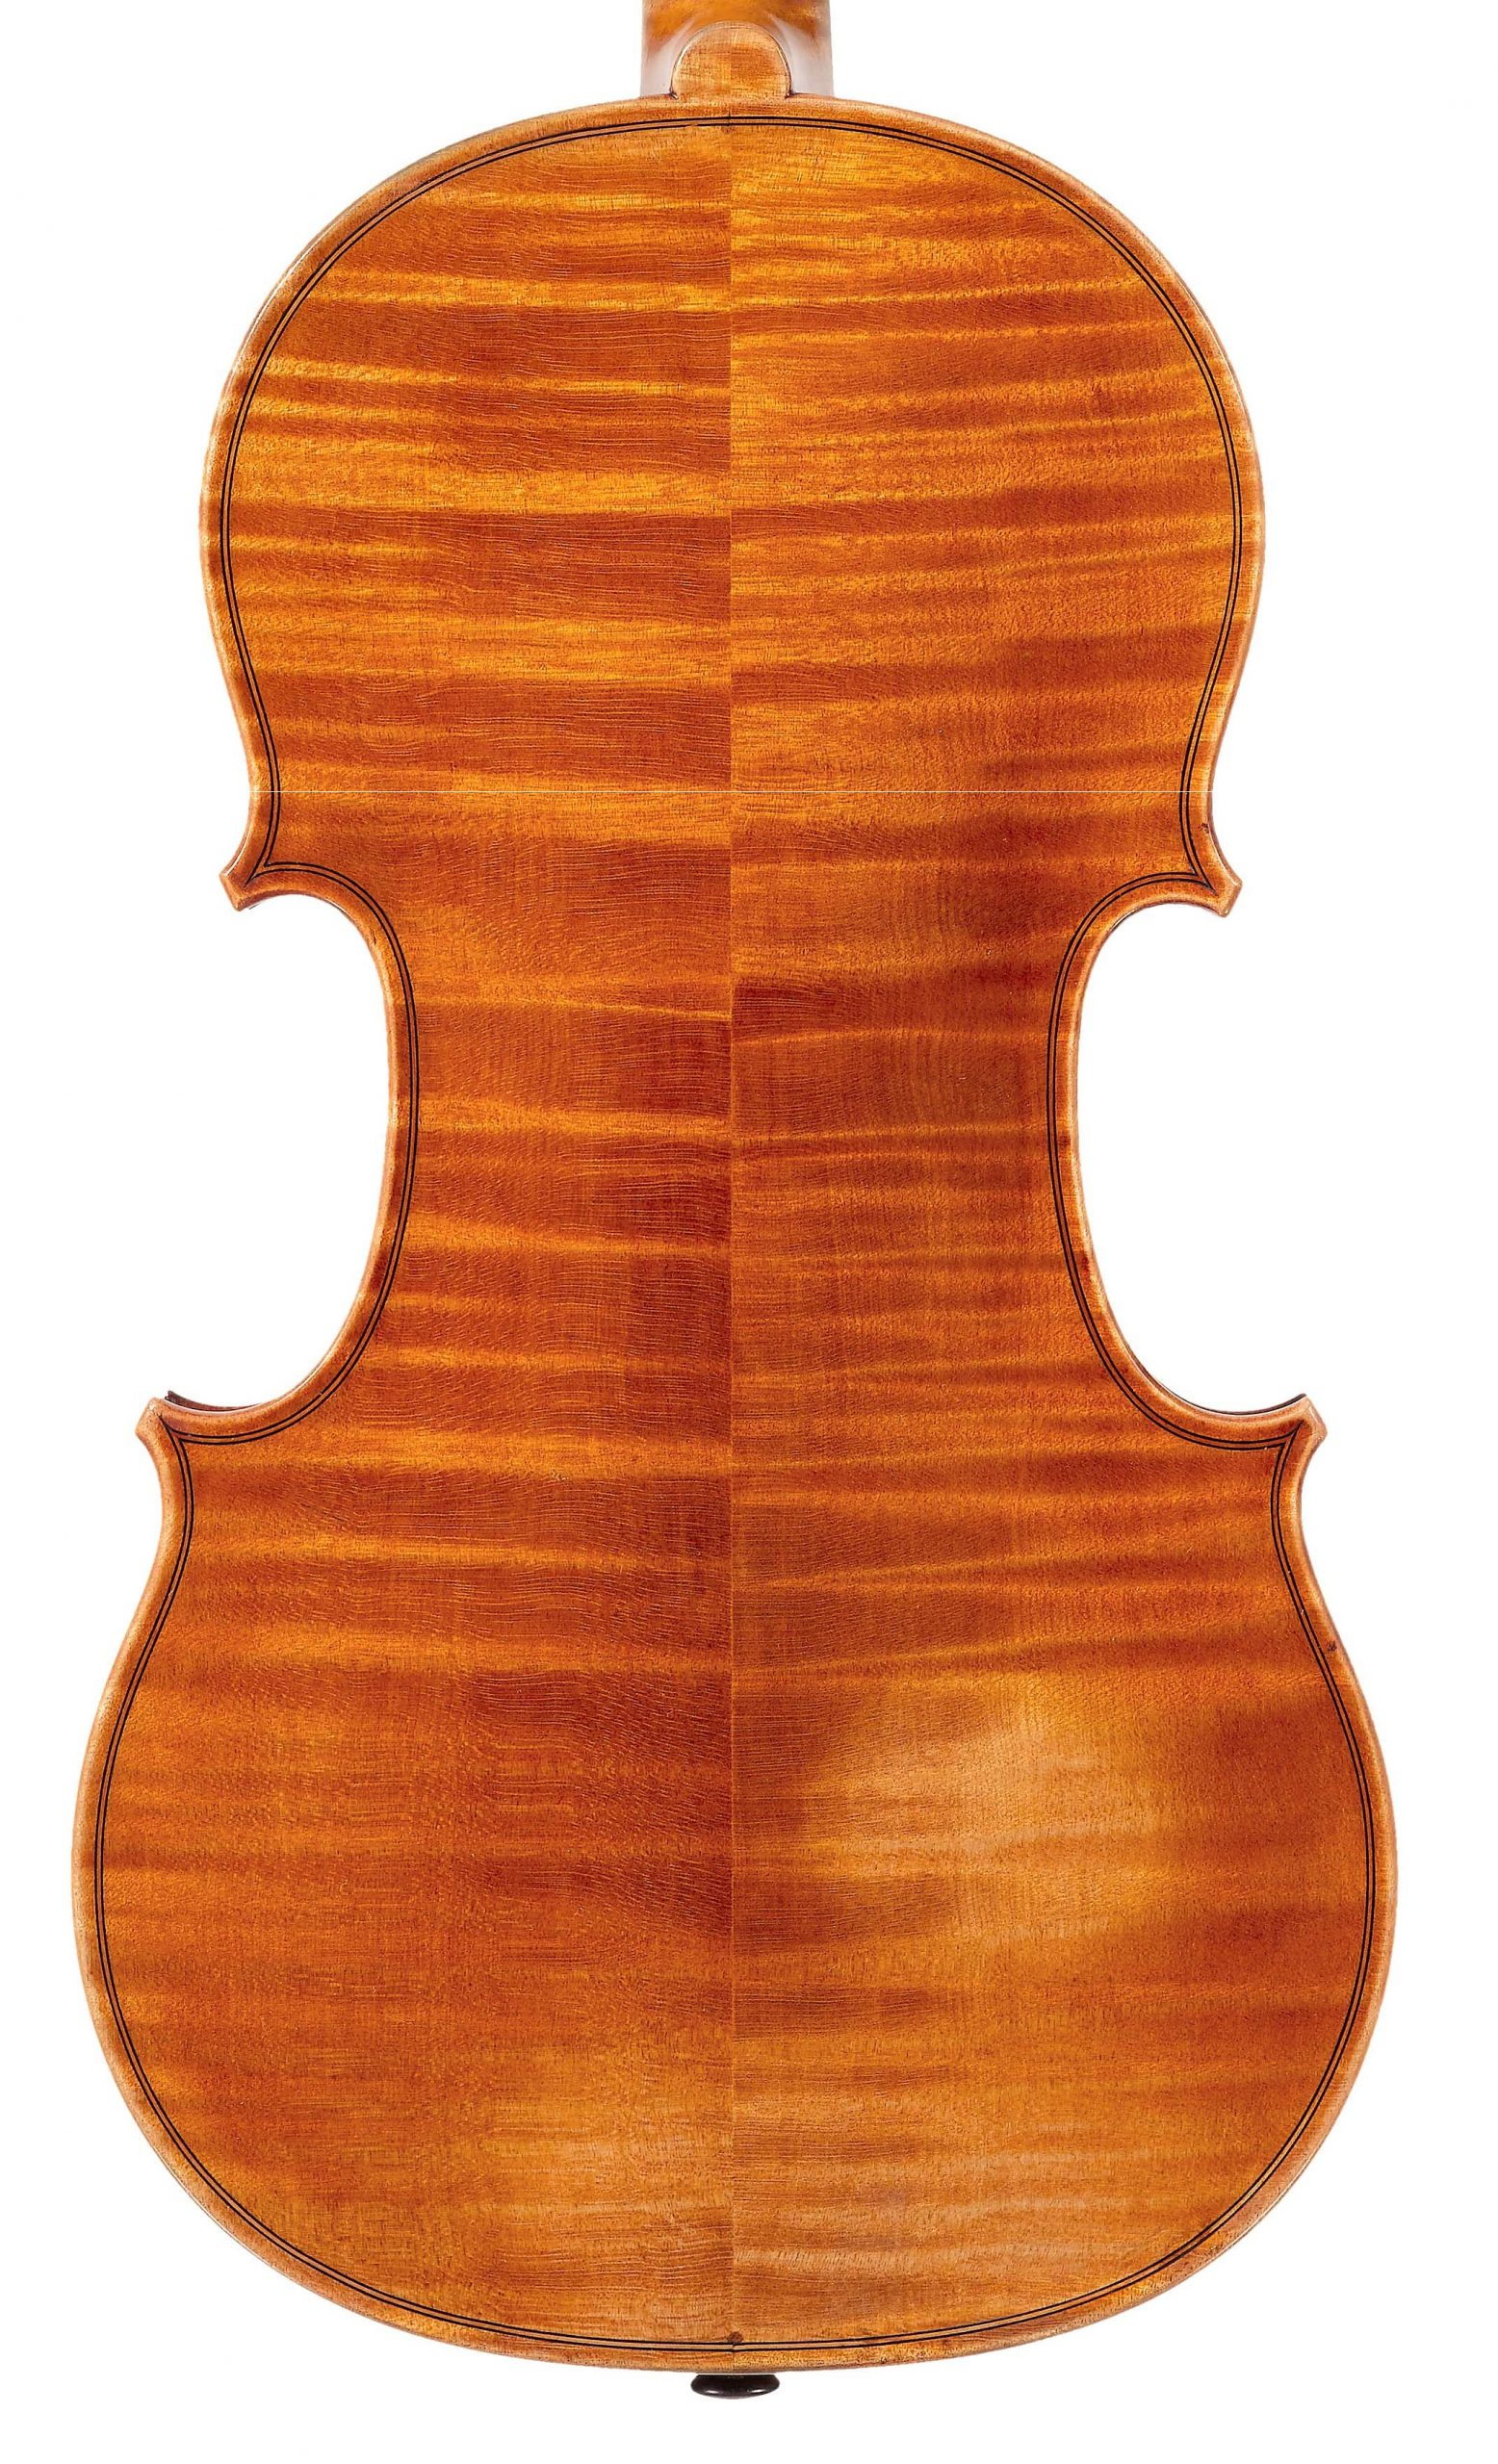 Back of St. Marc violin from the Evangelists quartet by JB Vuillaume, dated 18